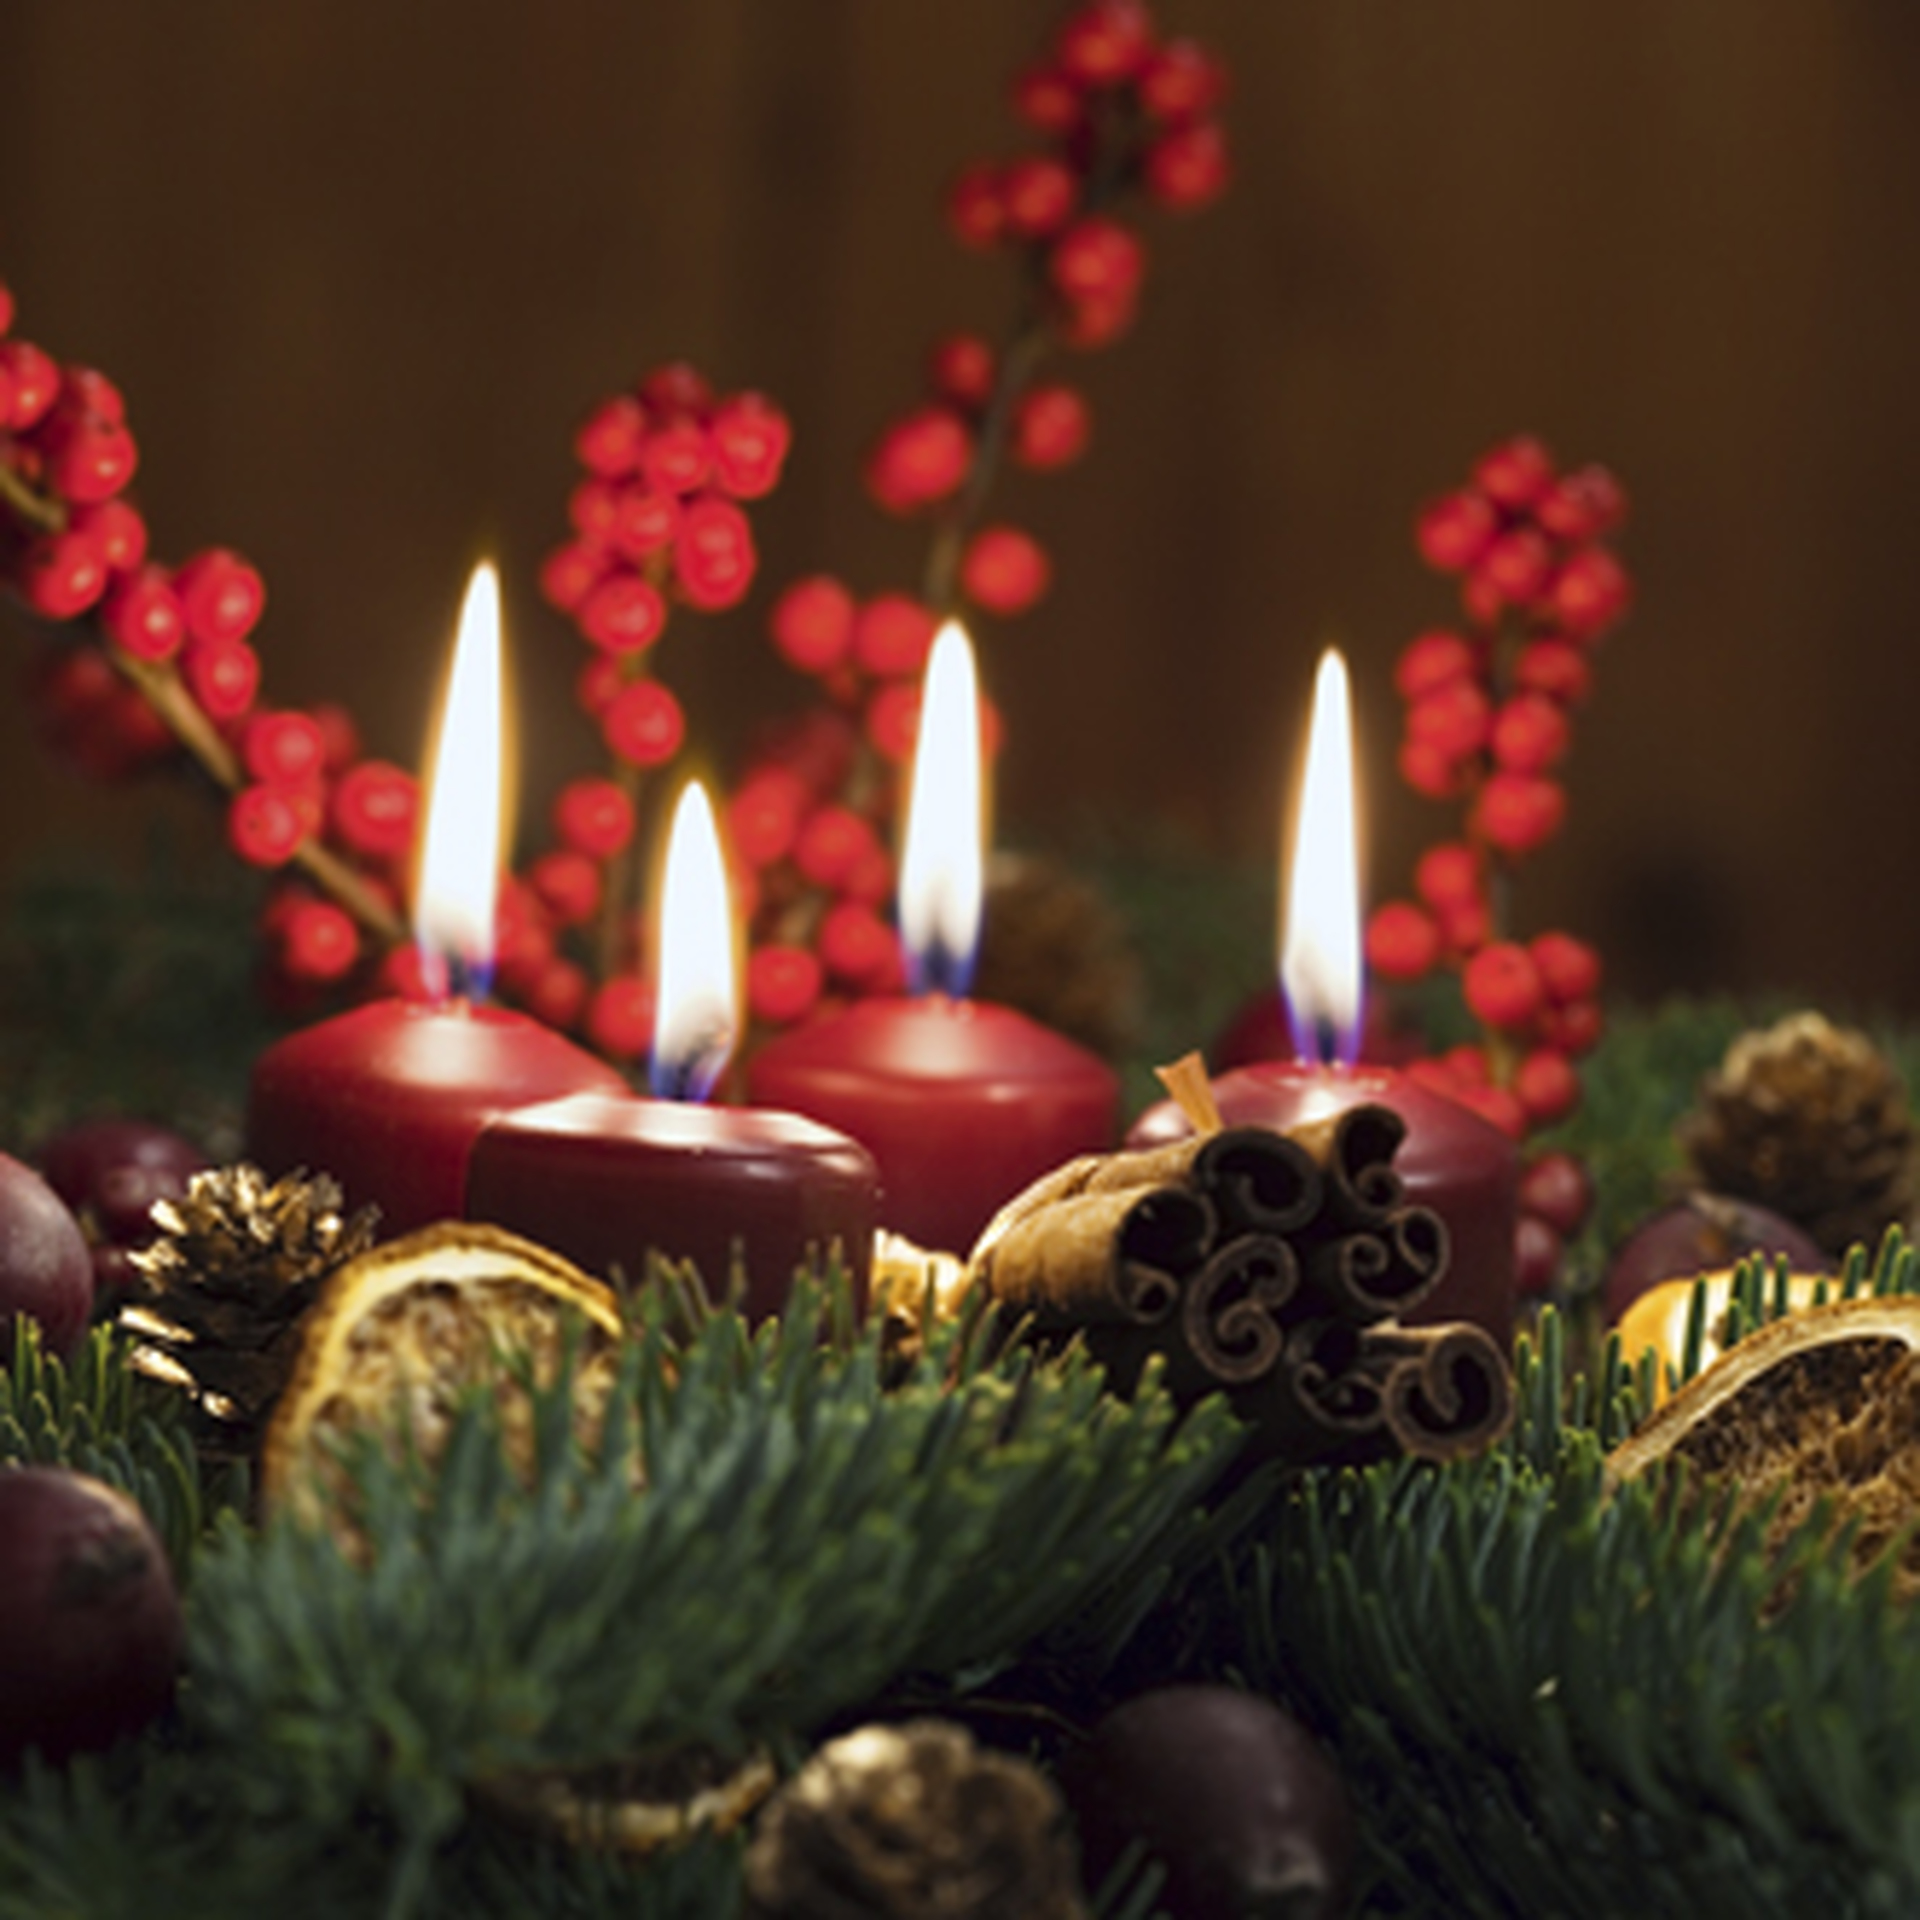 Looking forward to Advent